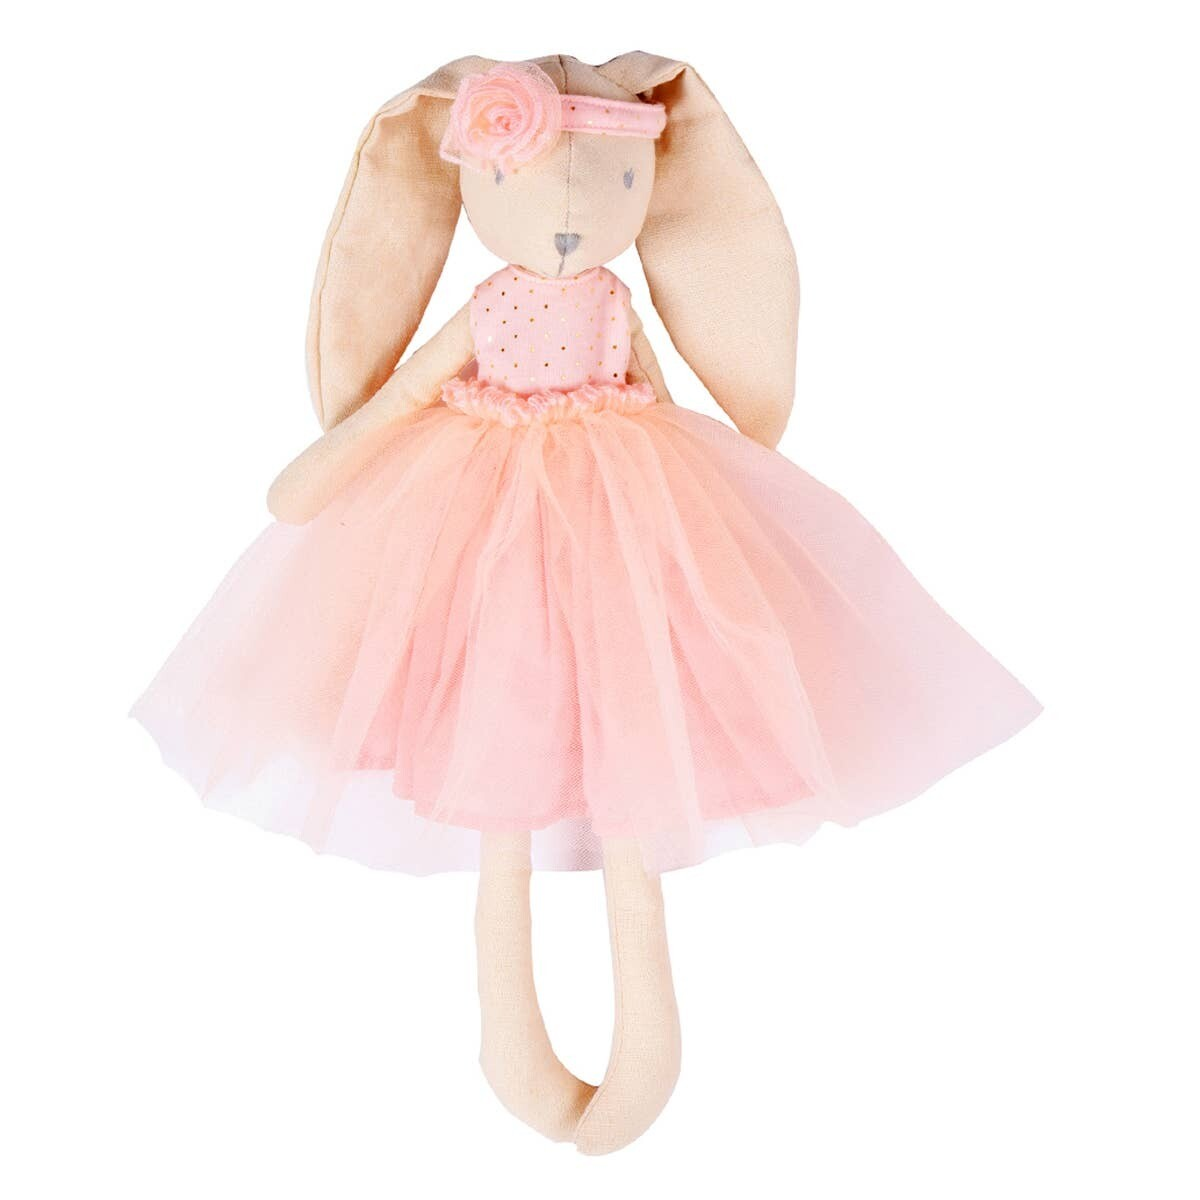 Tikiri Marcella The Bunny In Ballerina Pink Dress